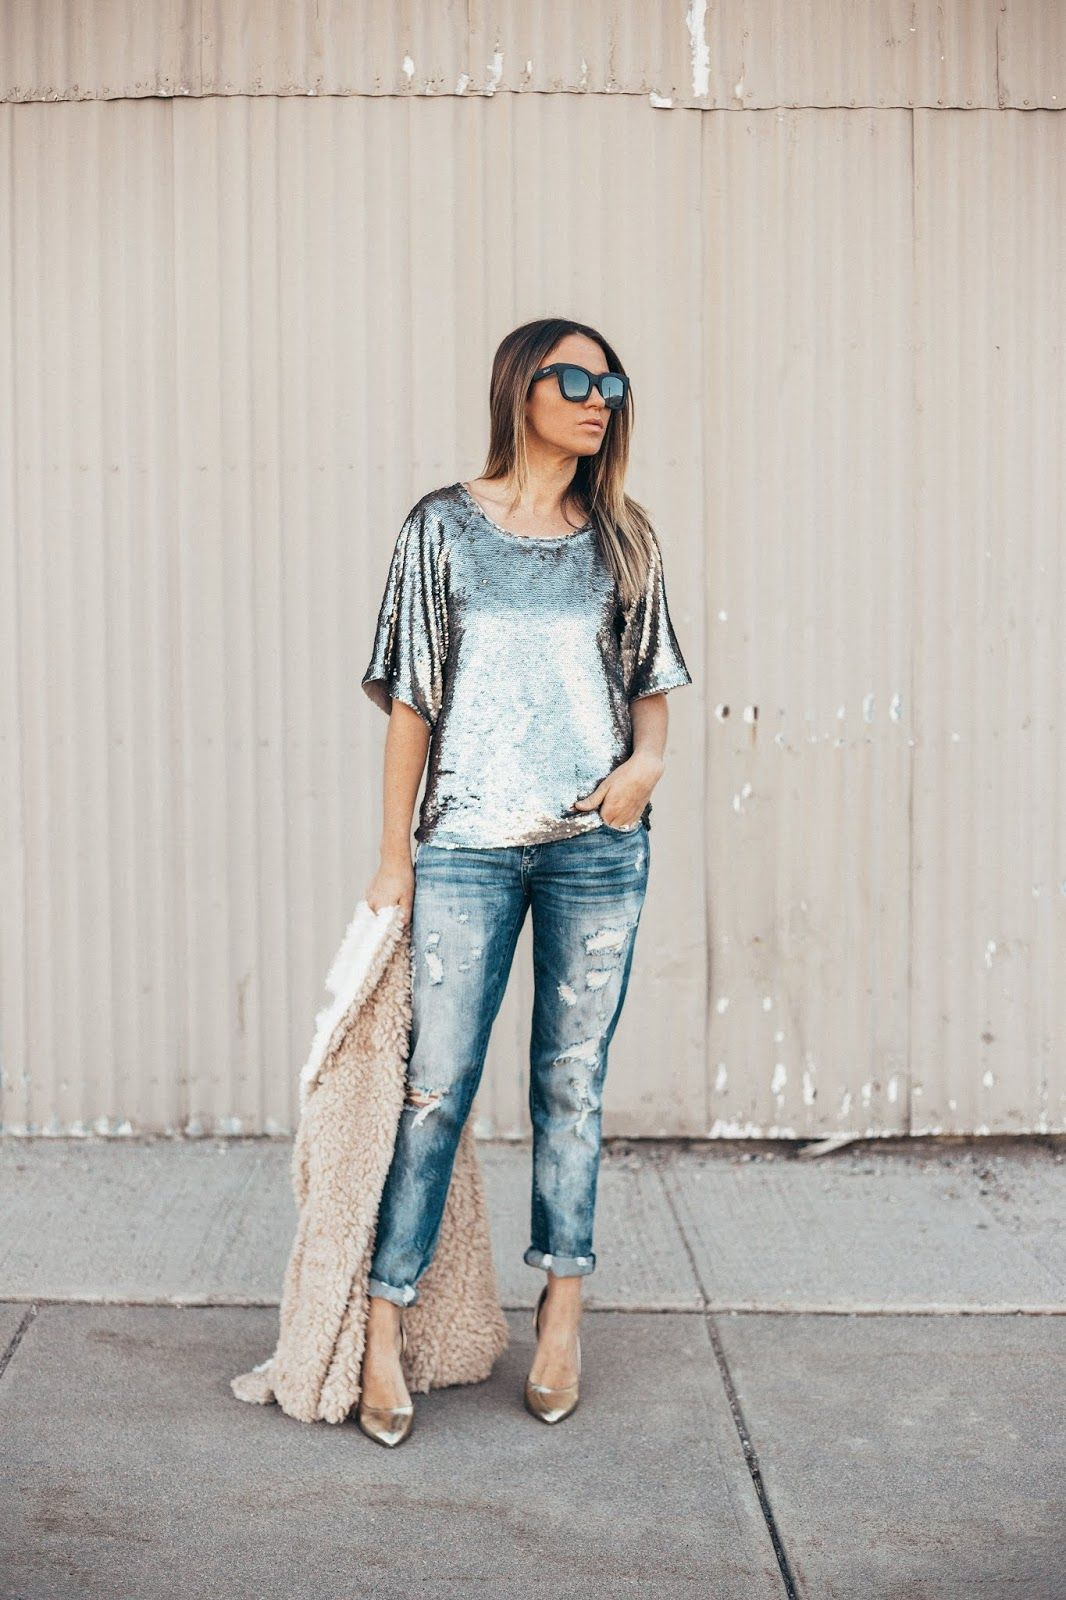 6 Sparkly Outfits for New Year's Eve (Without Being Crazy